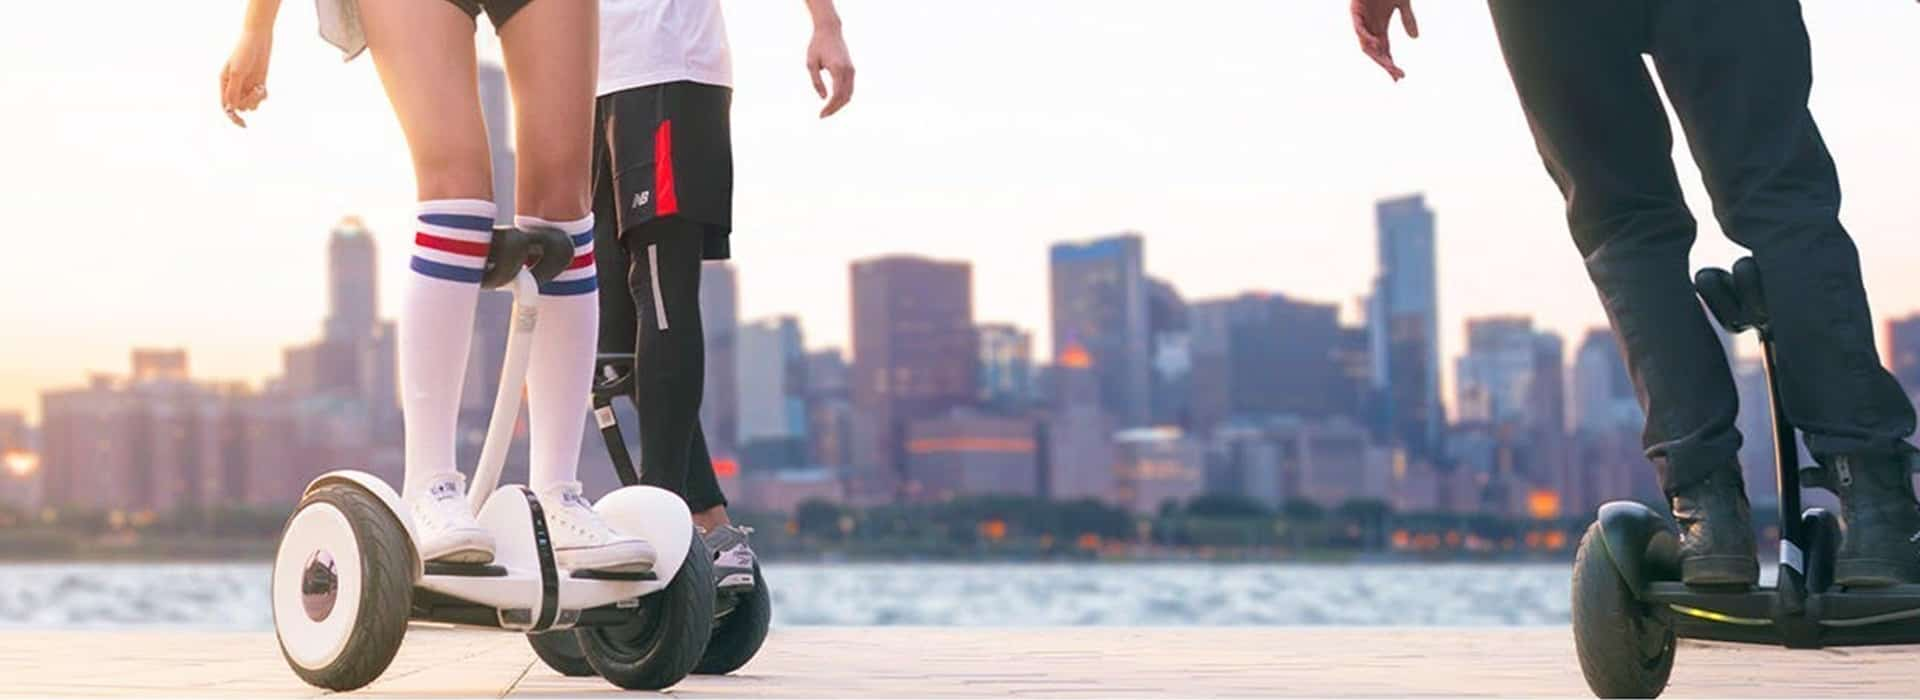 Best Two Wheel Scooters Of 2018 – Ultimate Buyer's Guide